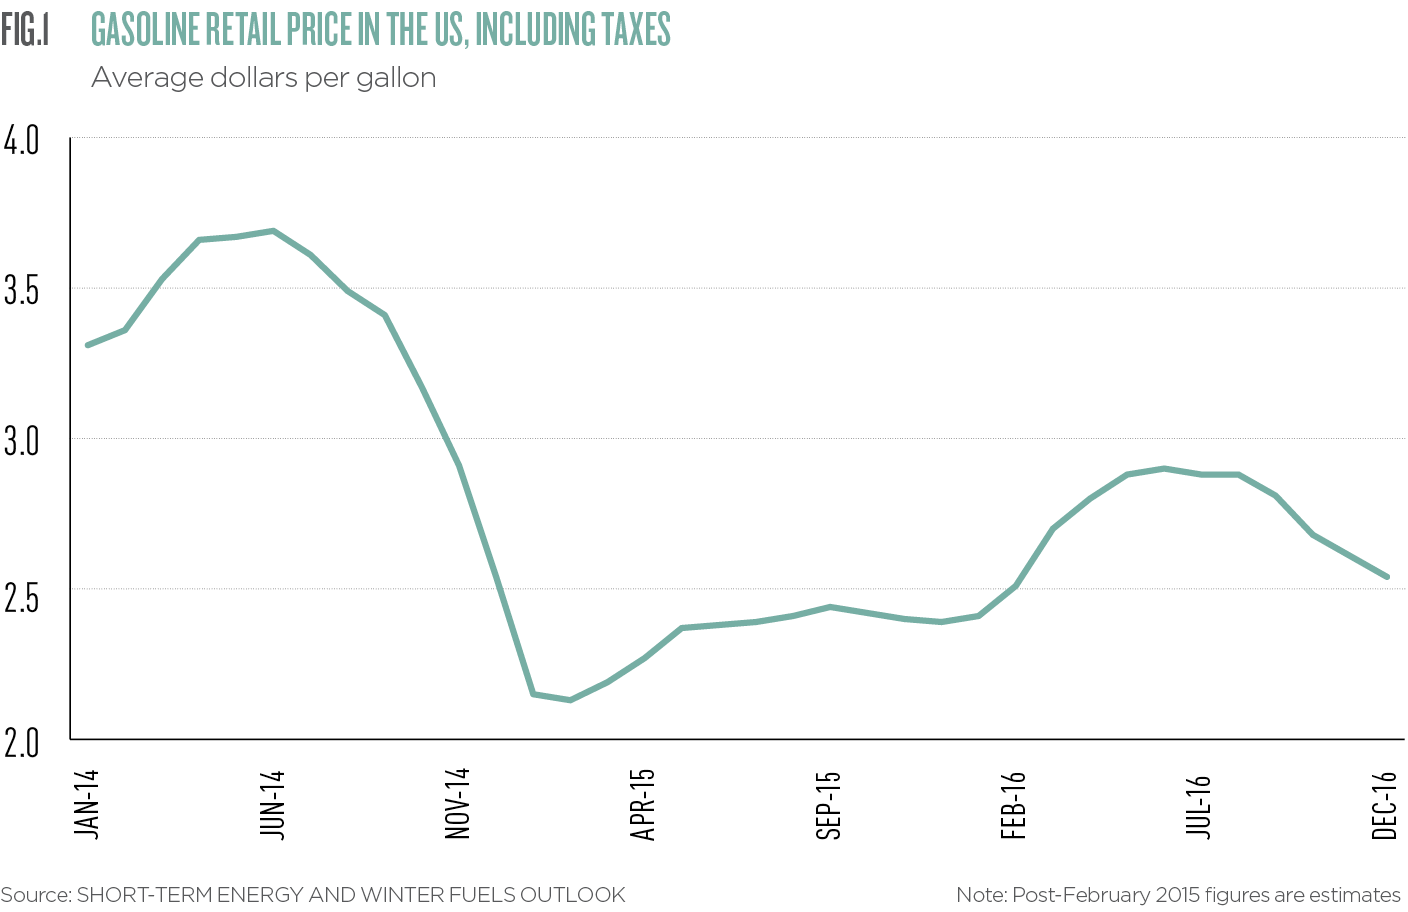 Gasoline Retail Price in the US, including taxes